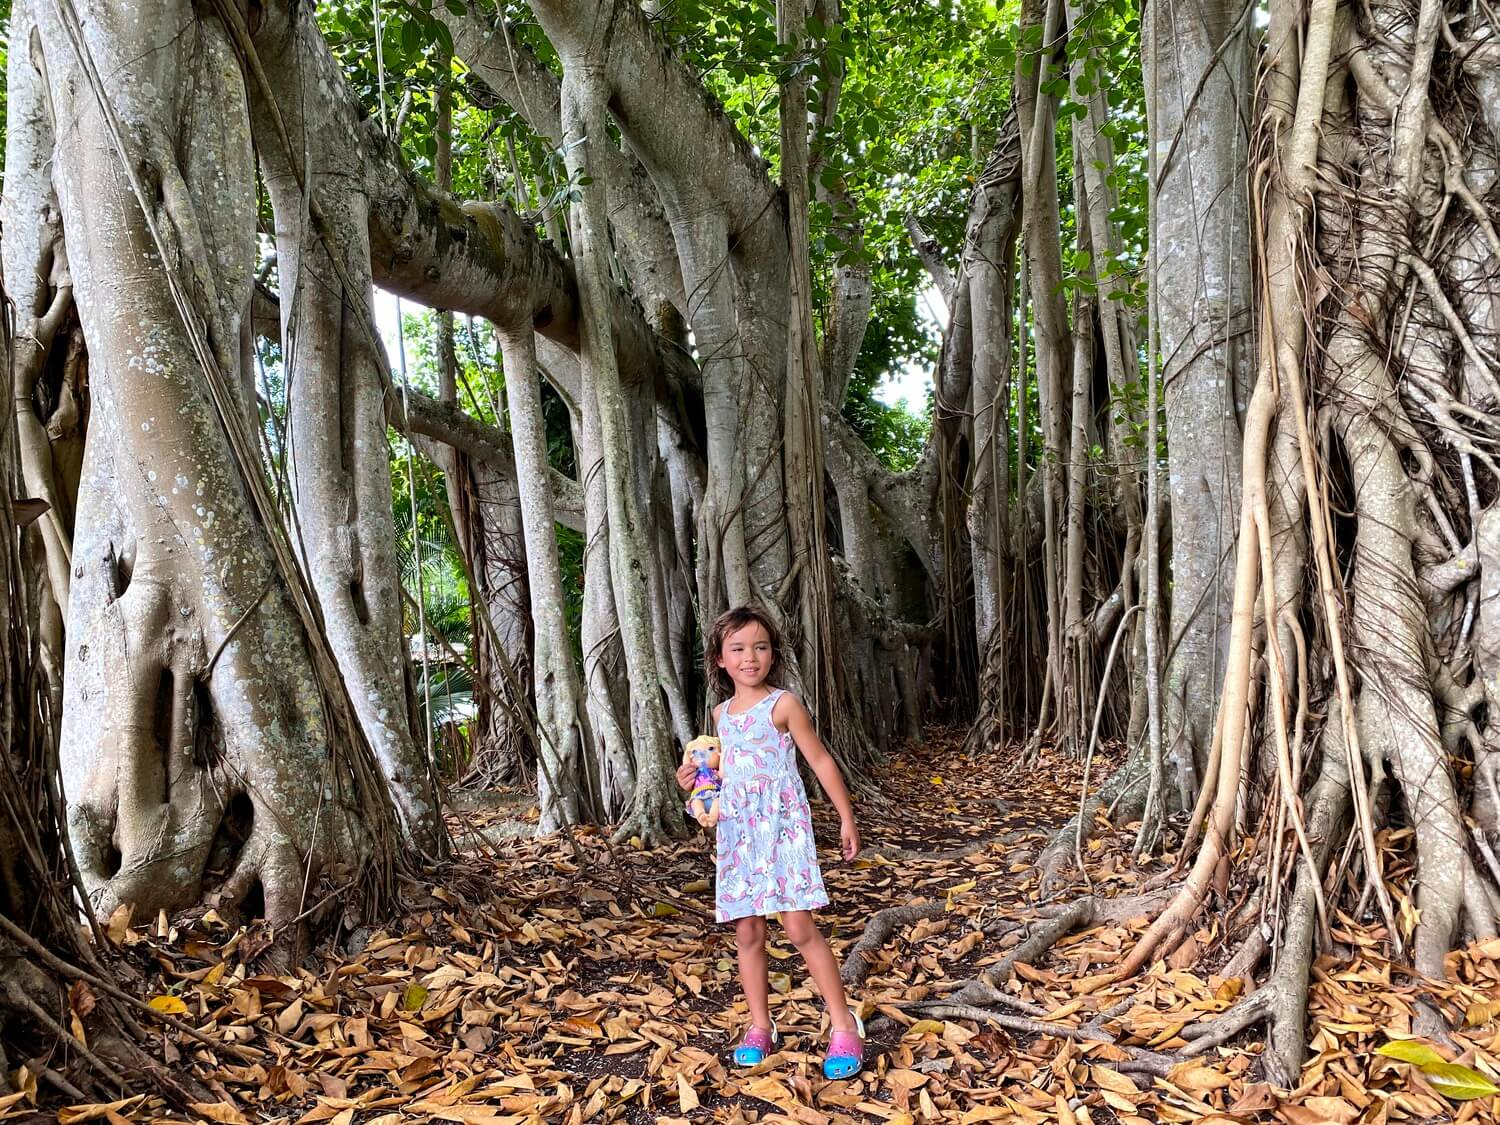 Elyse in a banyan tree forest